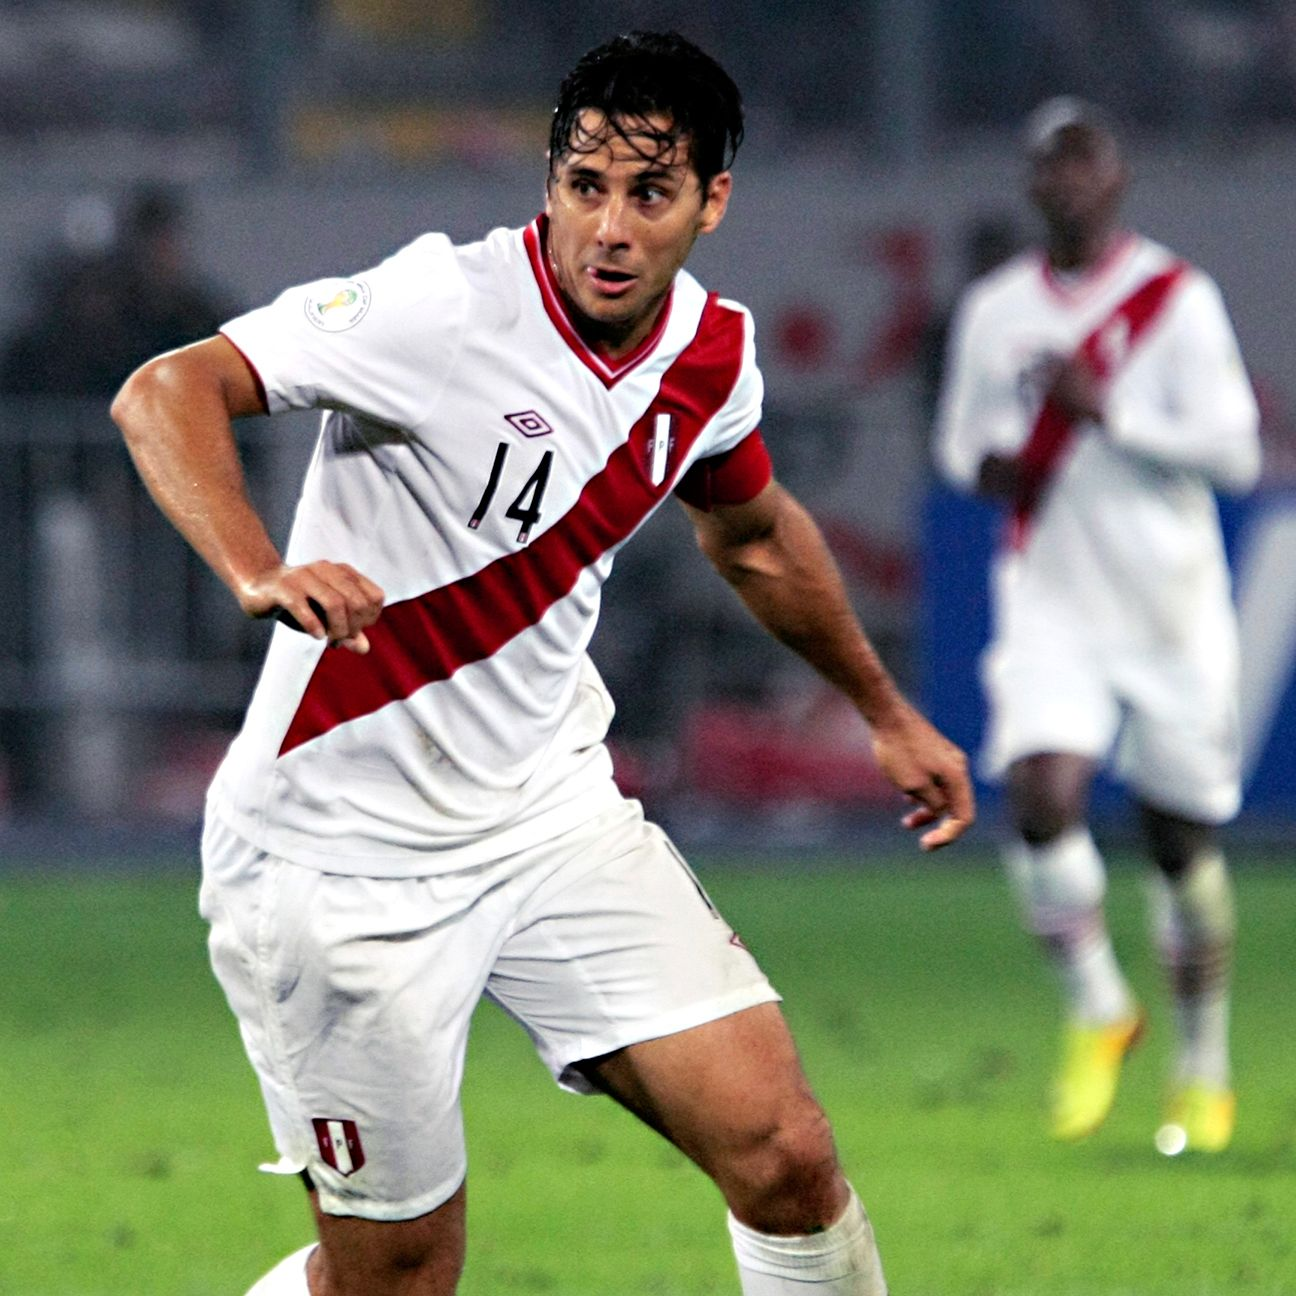 Claudio Pizarro and Peru reached the semifinals in 2011, however a return trip in 2015 could prove too tall a task.